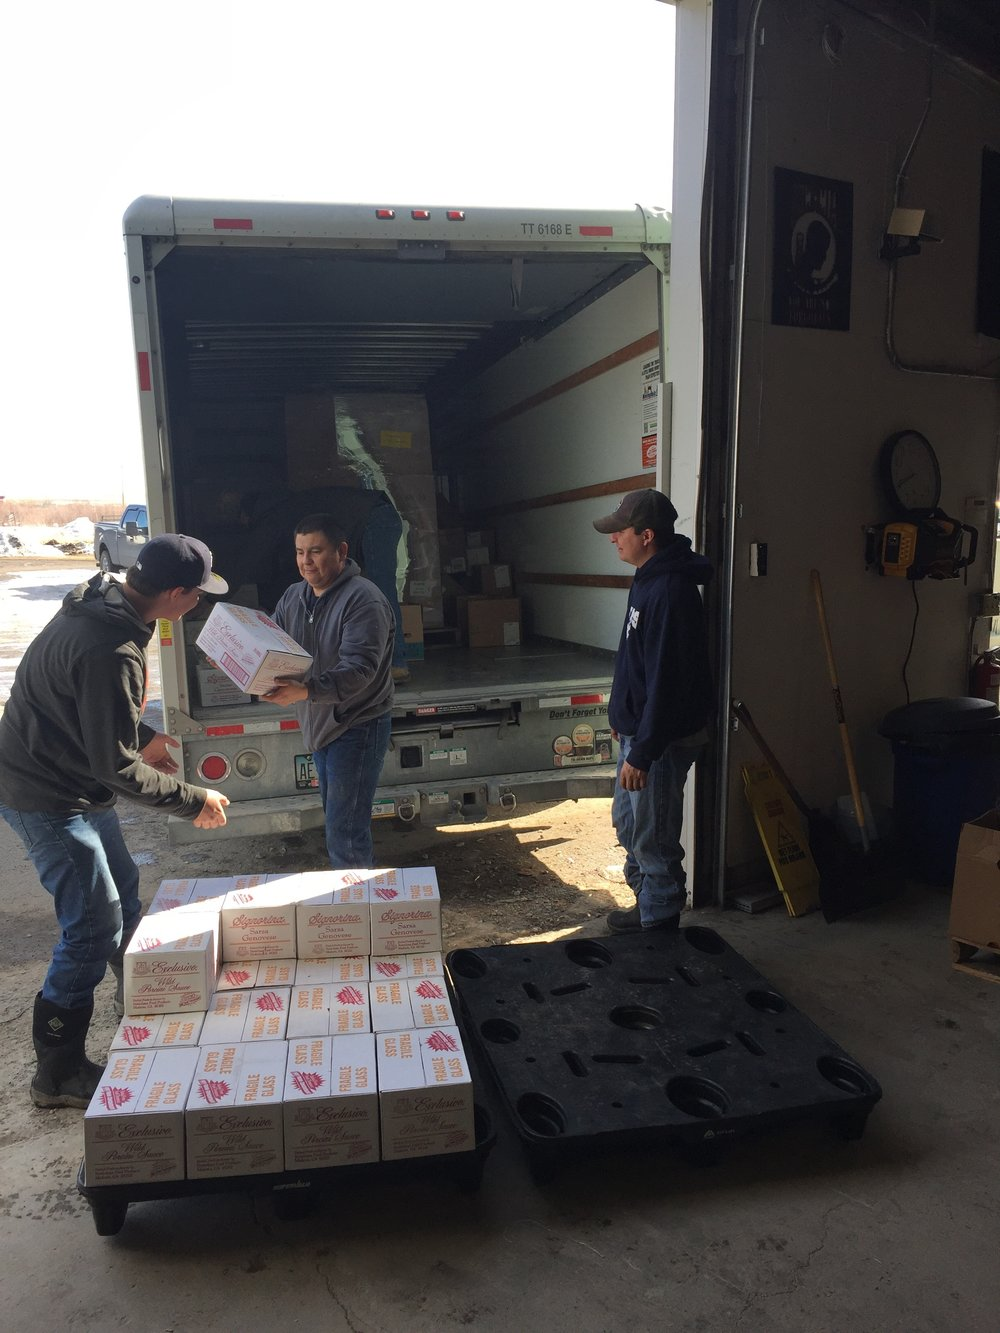 Unloading some boxes of Stanislaus sauce